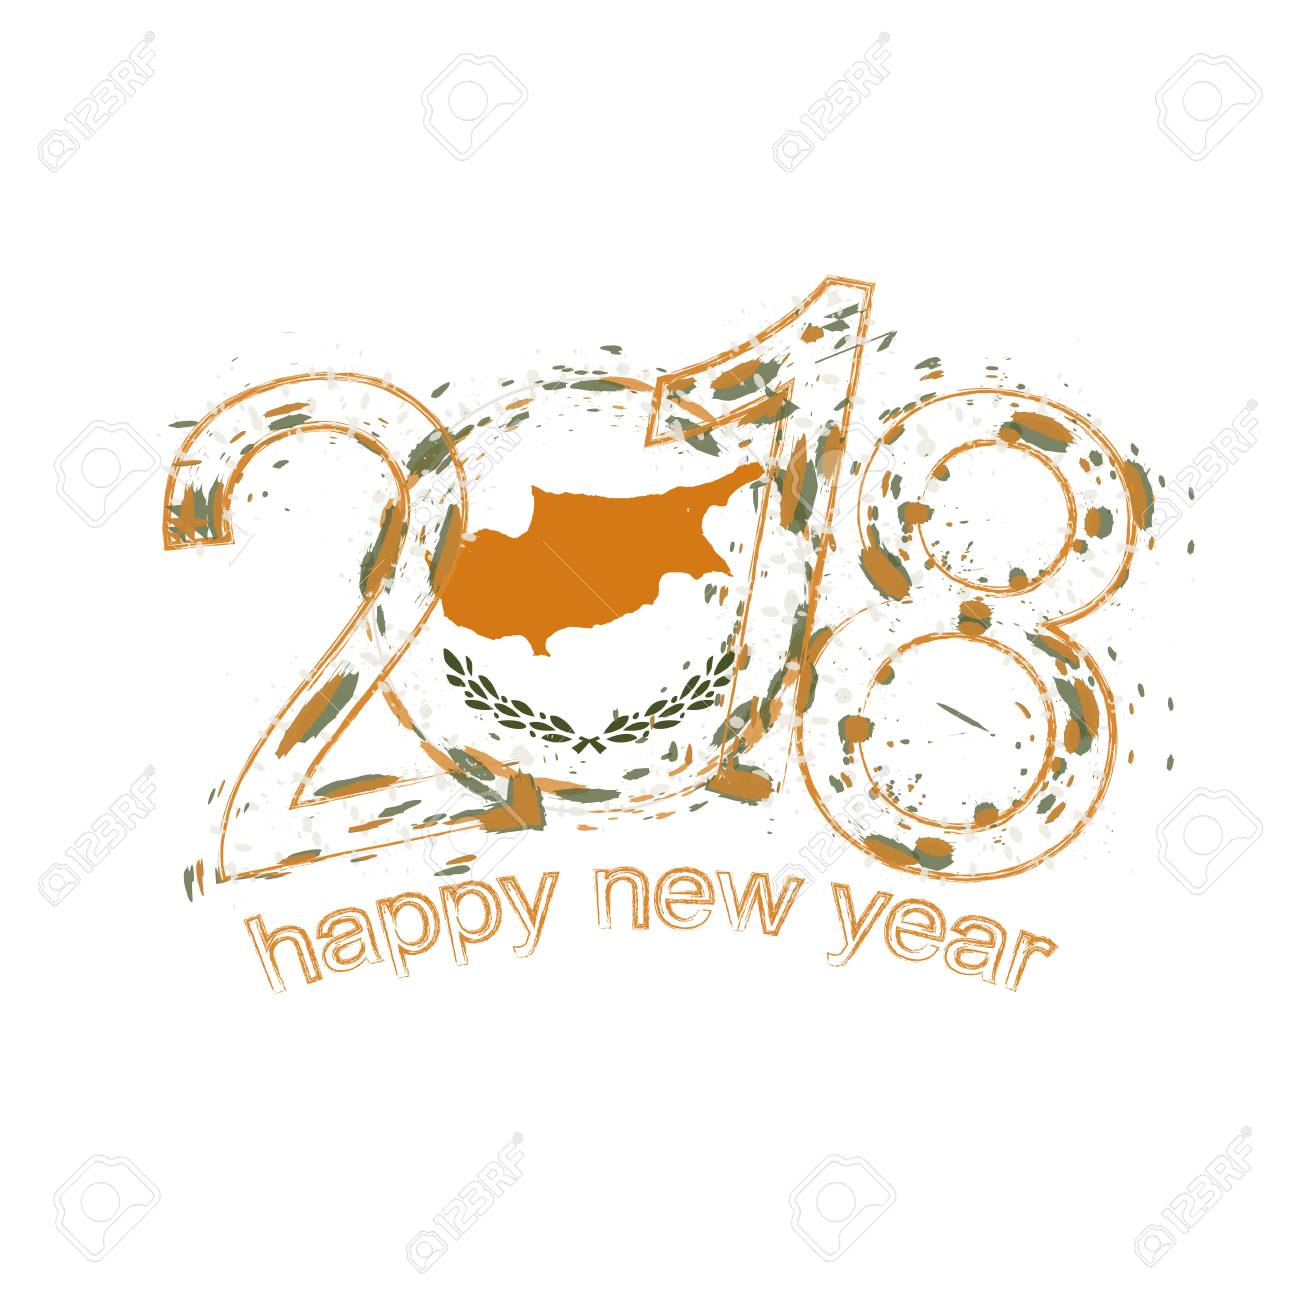 2018 Happy New Year Cyprus Grunge Vector Template For Greeting ...